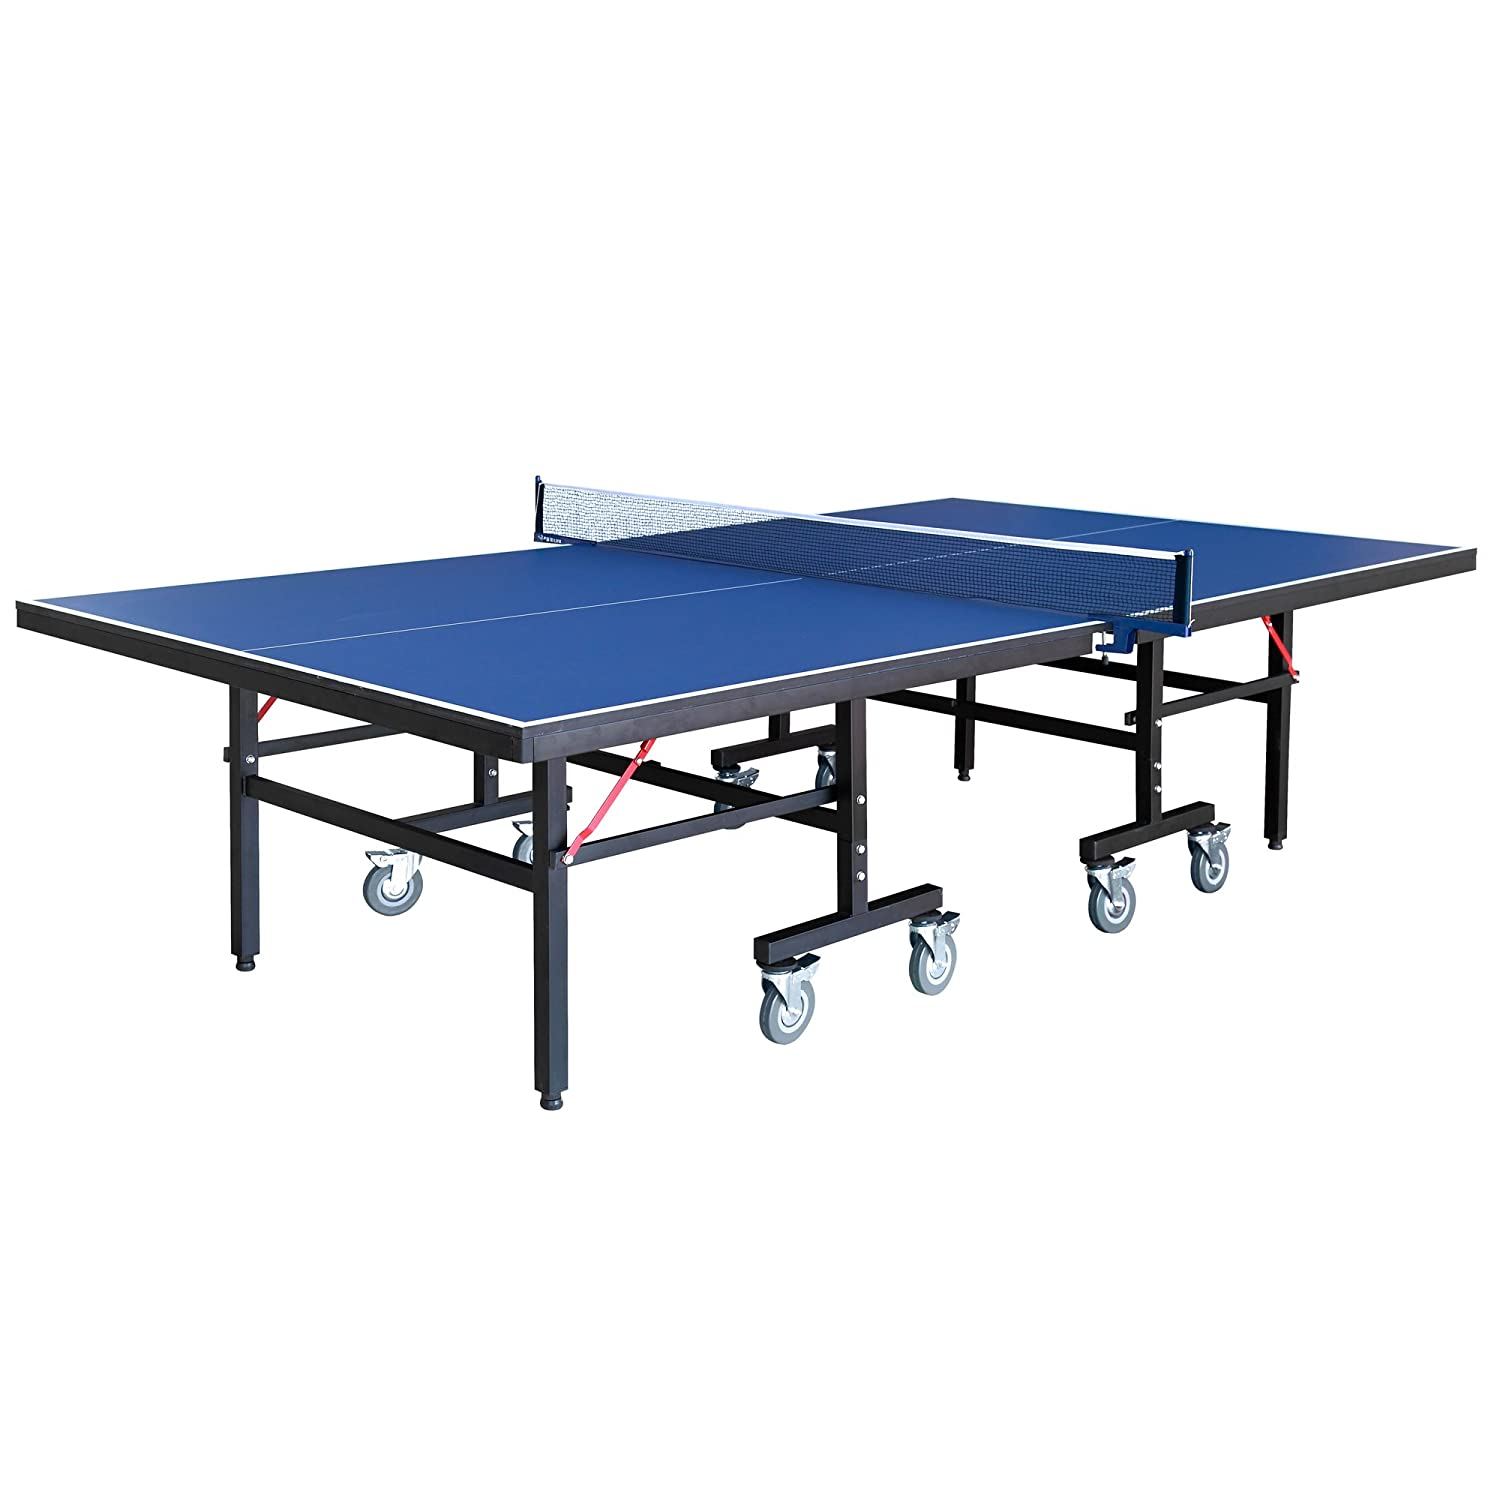 Amazon.com : Hathaway Back Stop 9 Foot Table Tennis For Family Game Rooms  With Foldable Halves For Individual Play Includes Net, Paddles, Balls :  Sports U0026 ...